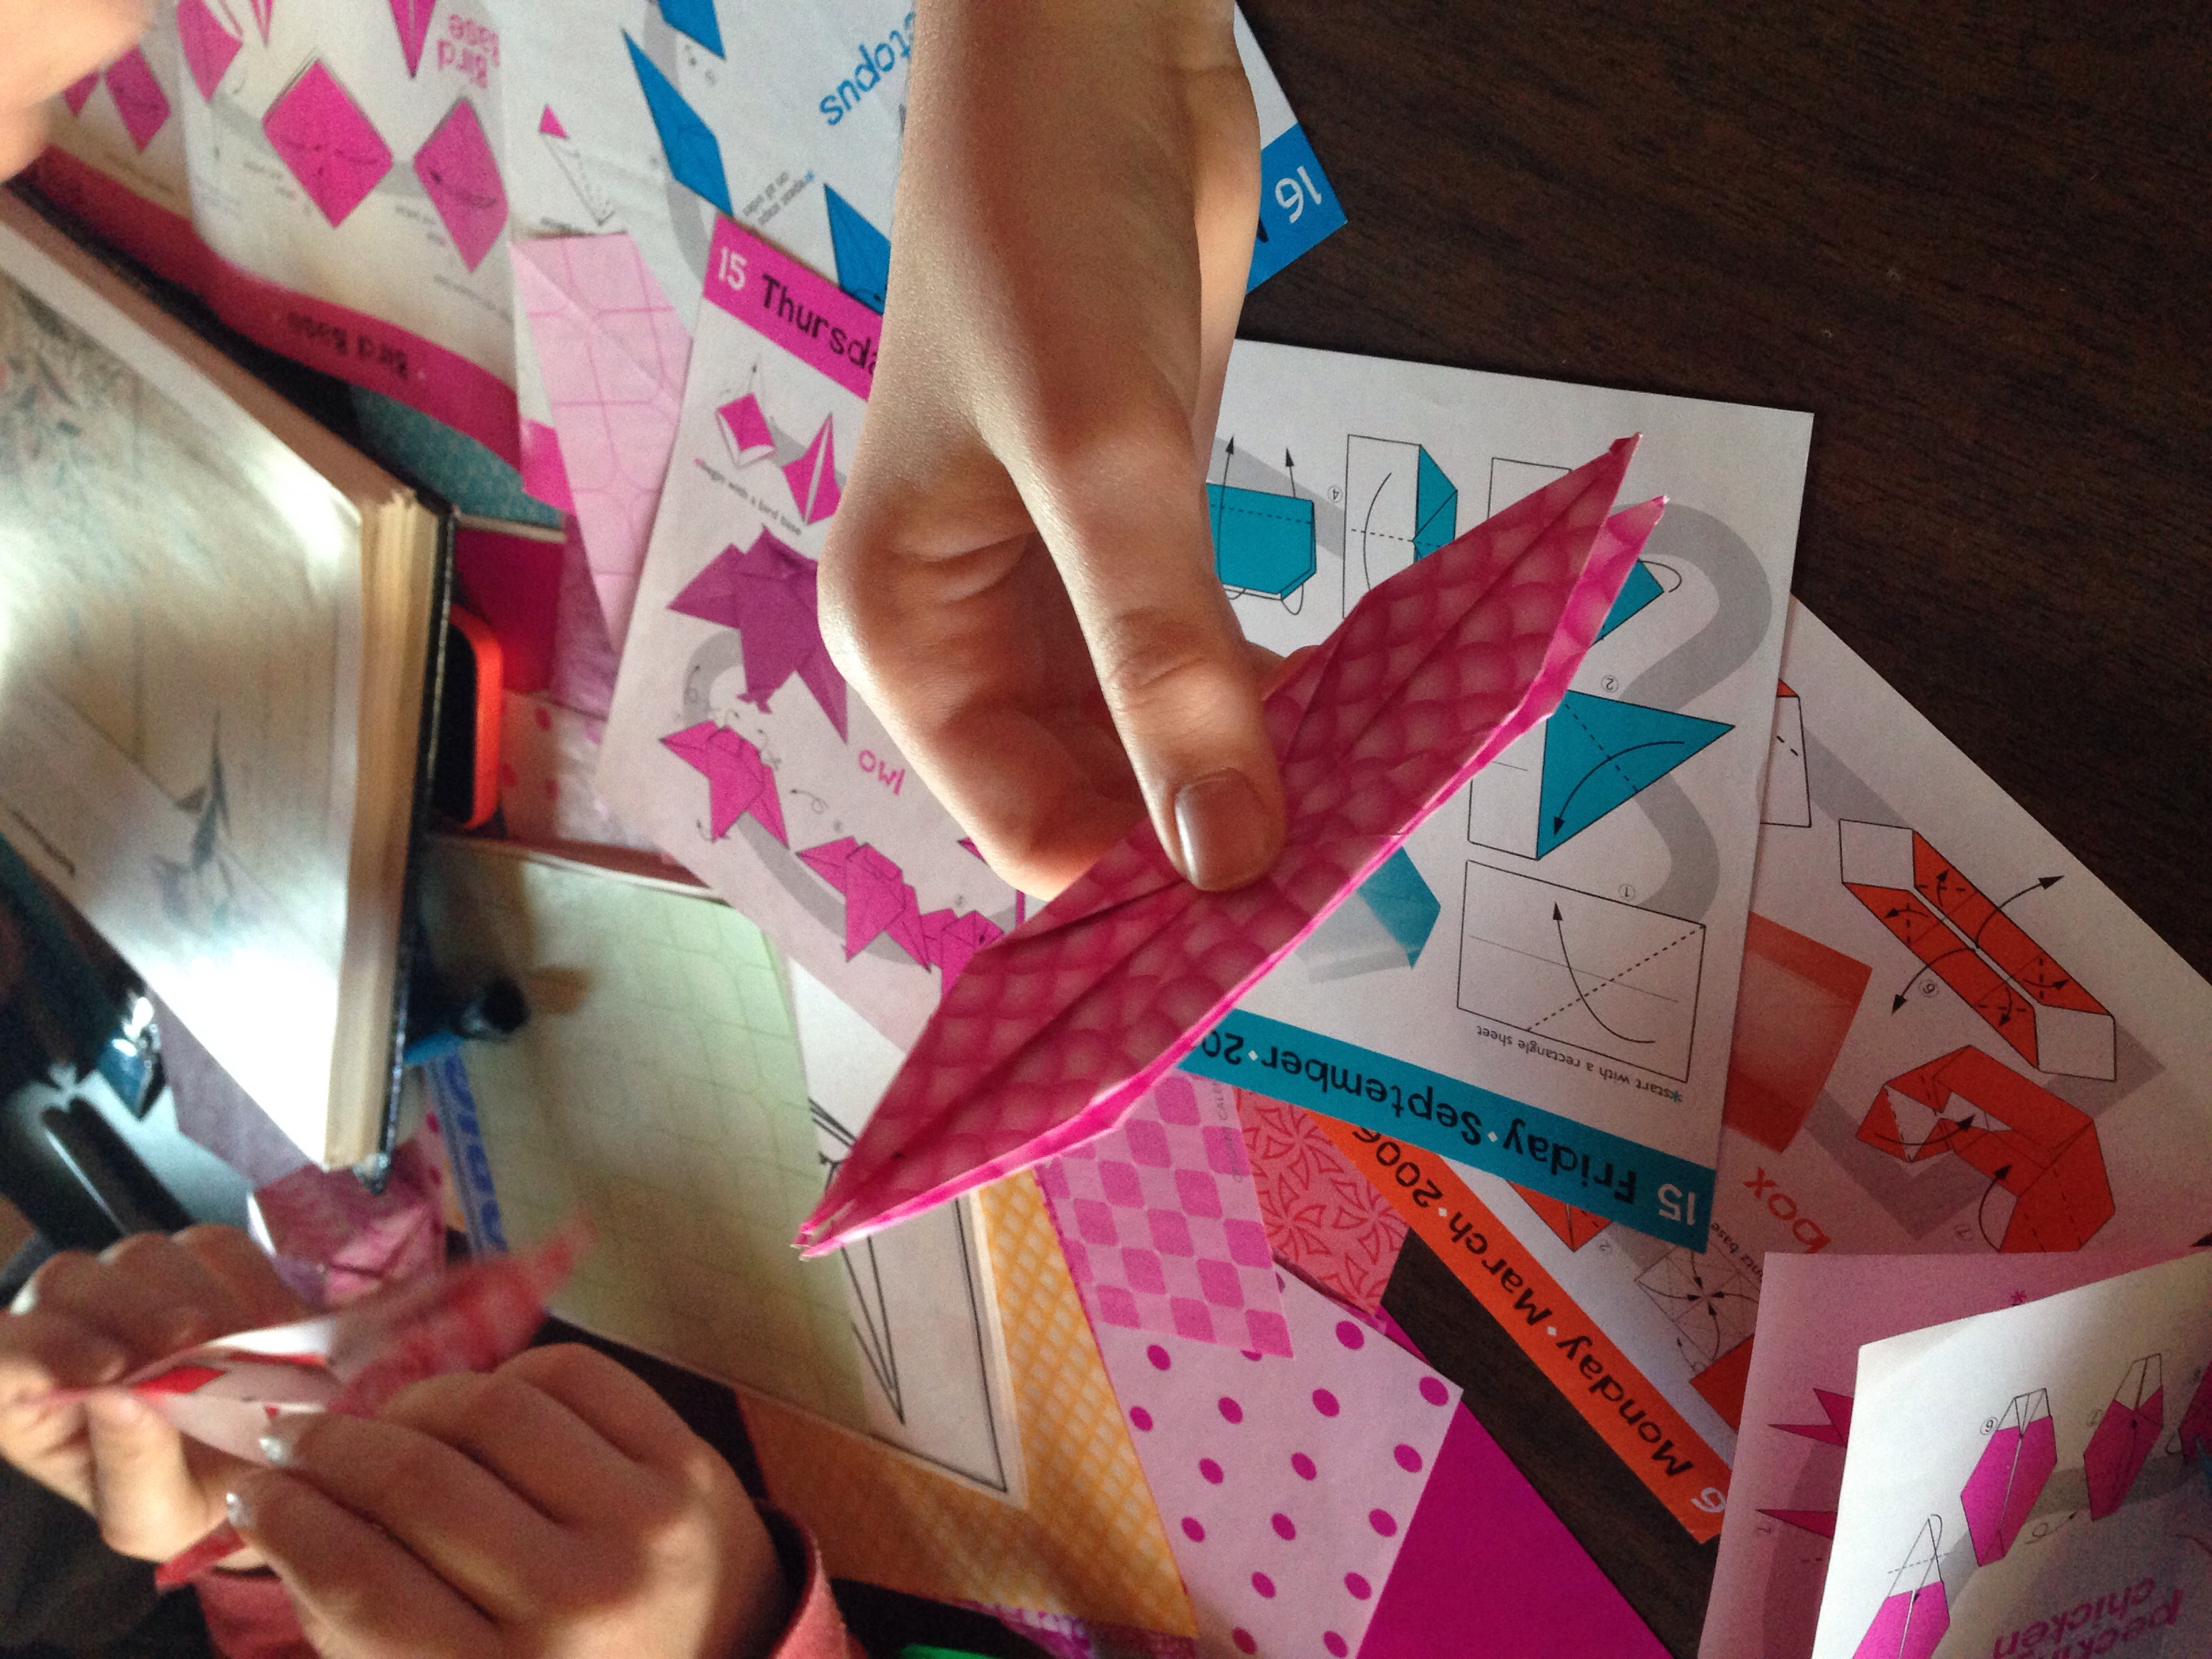 The beginnings of an origami crane